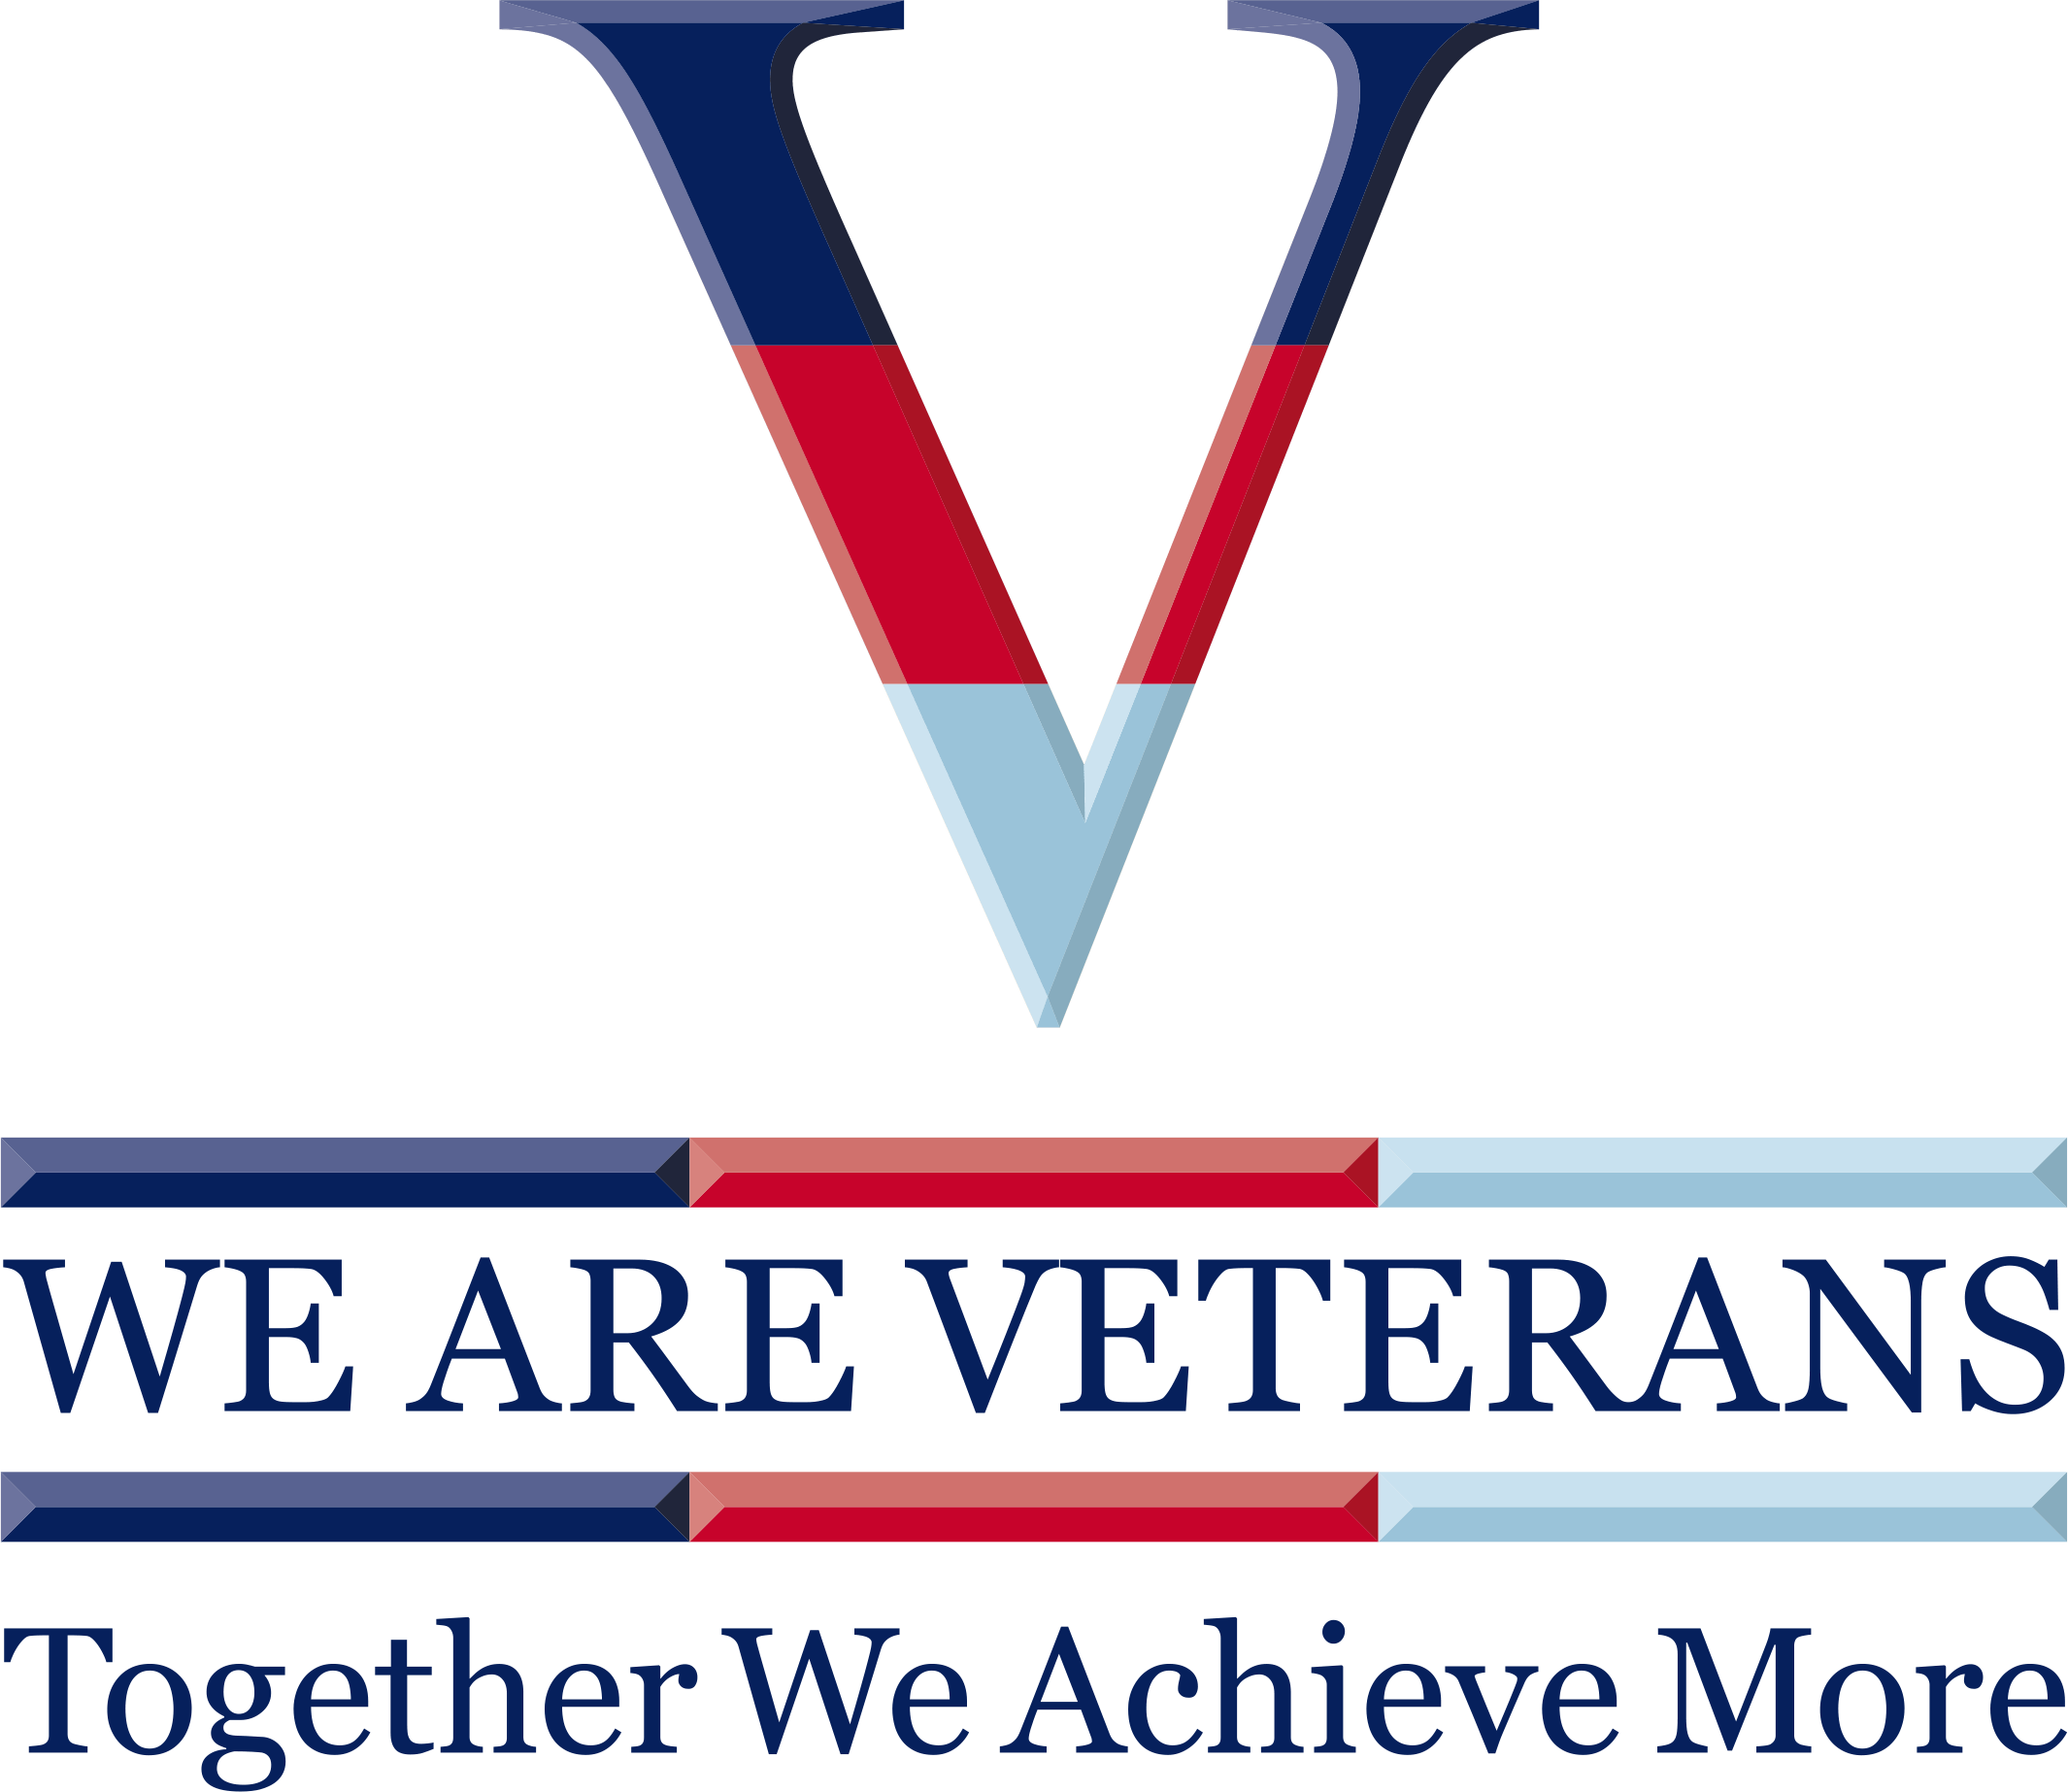 We Are Veterans /